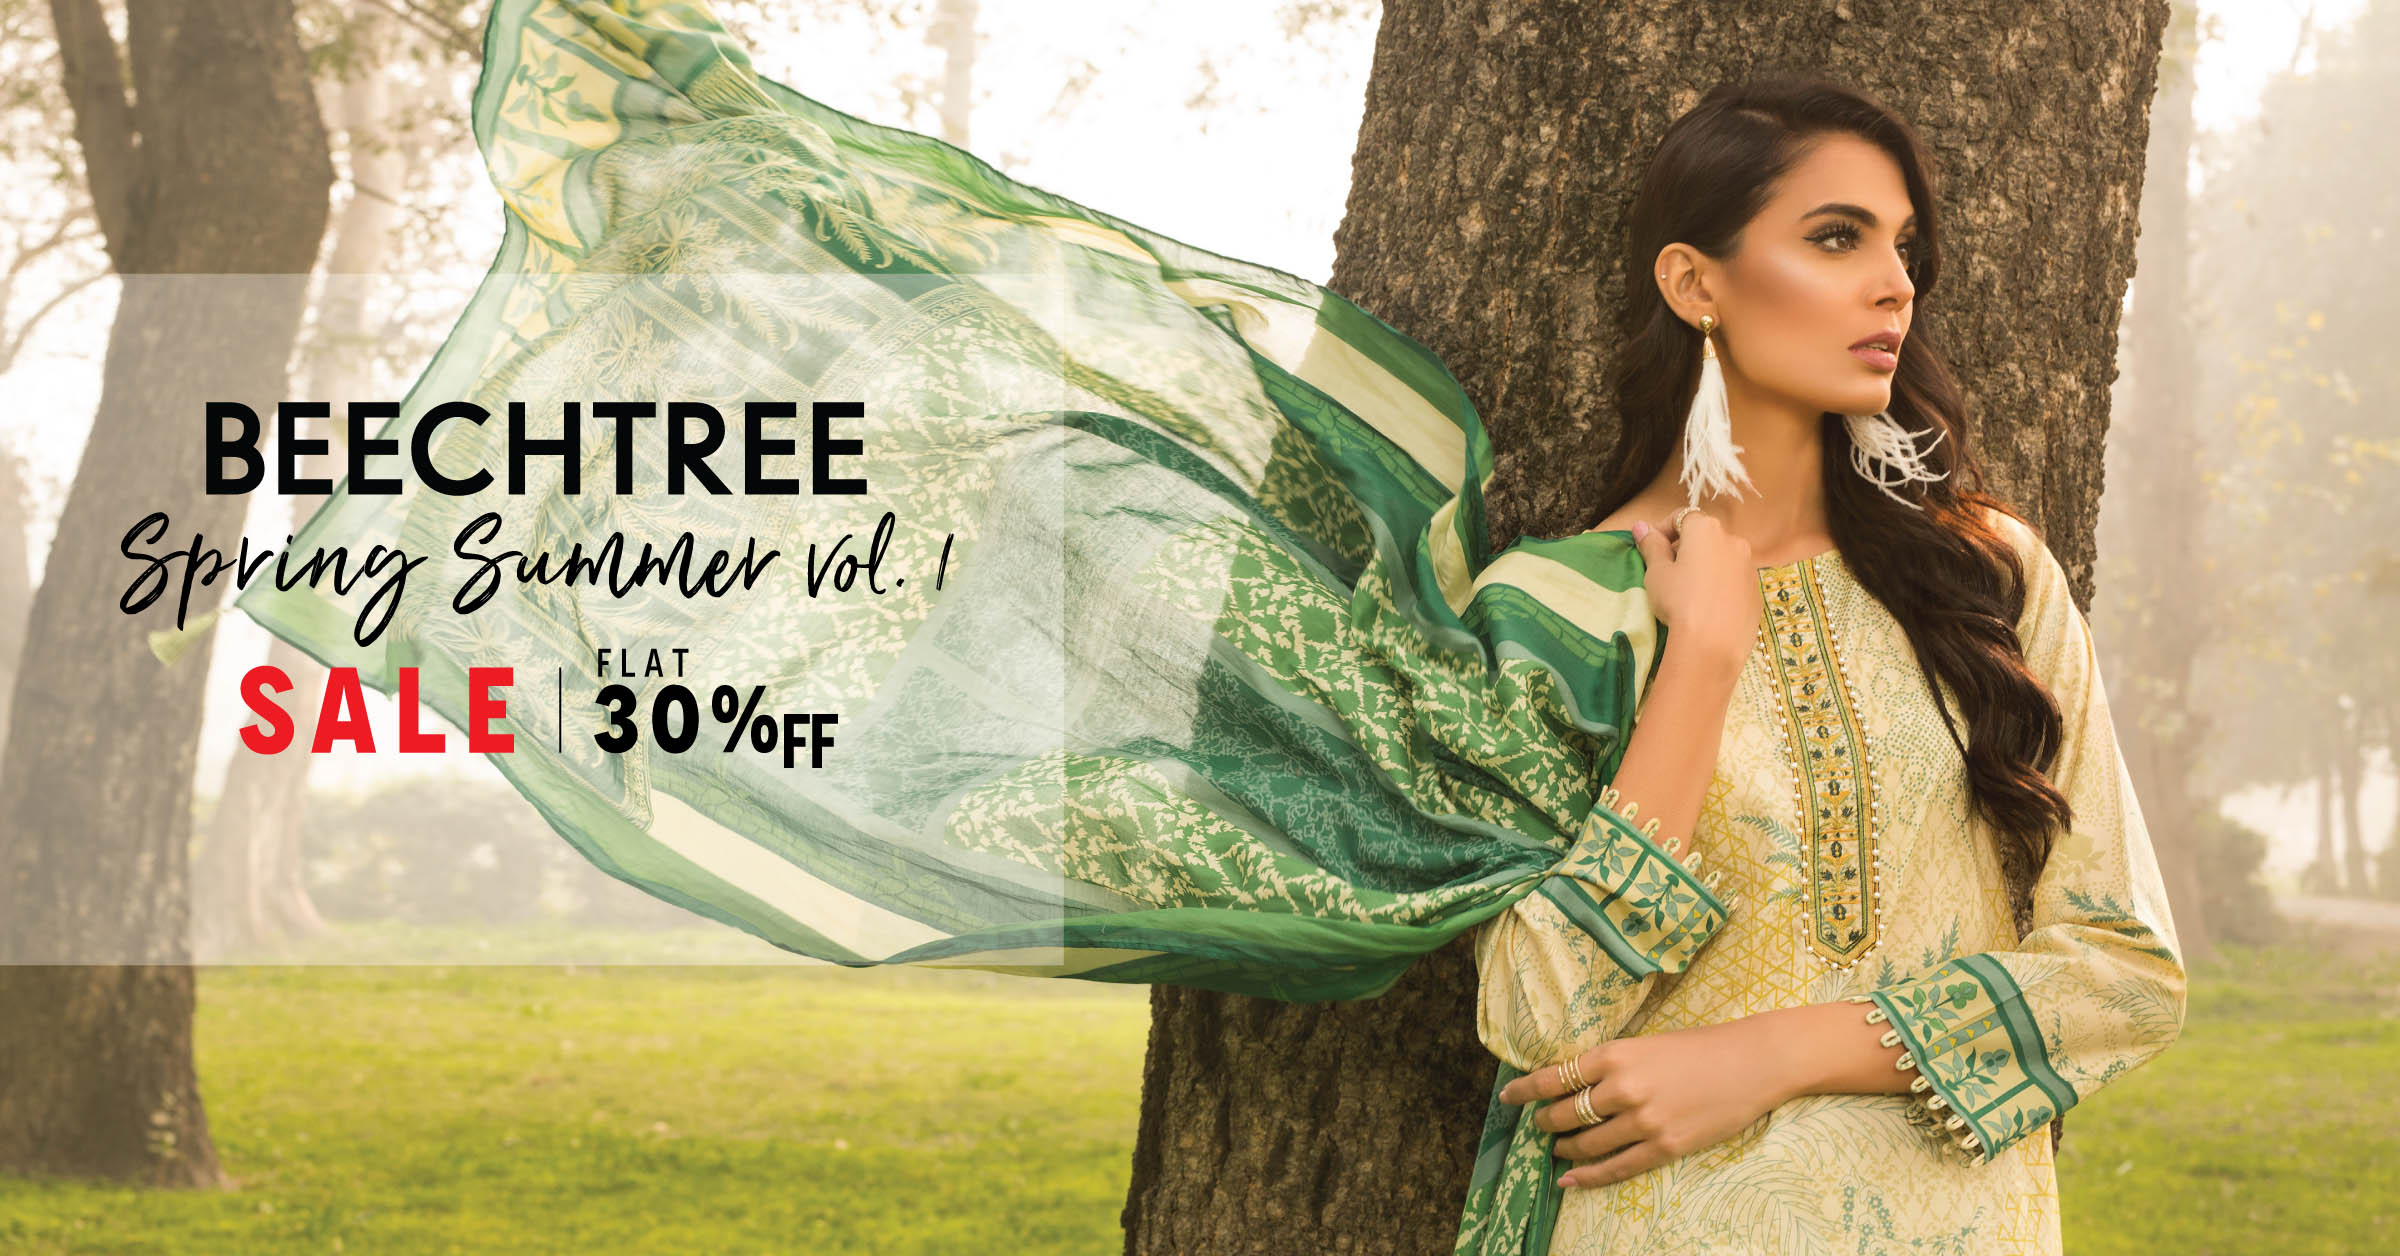 Beechtree - Flash Weekend Sale